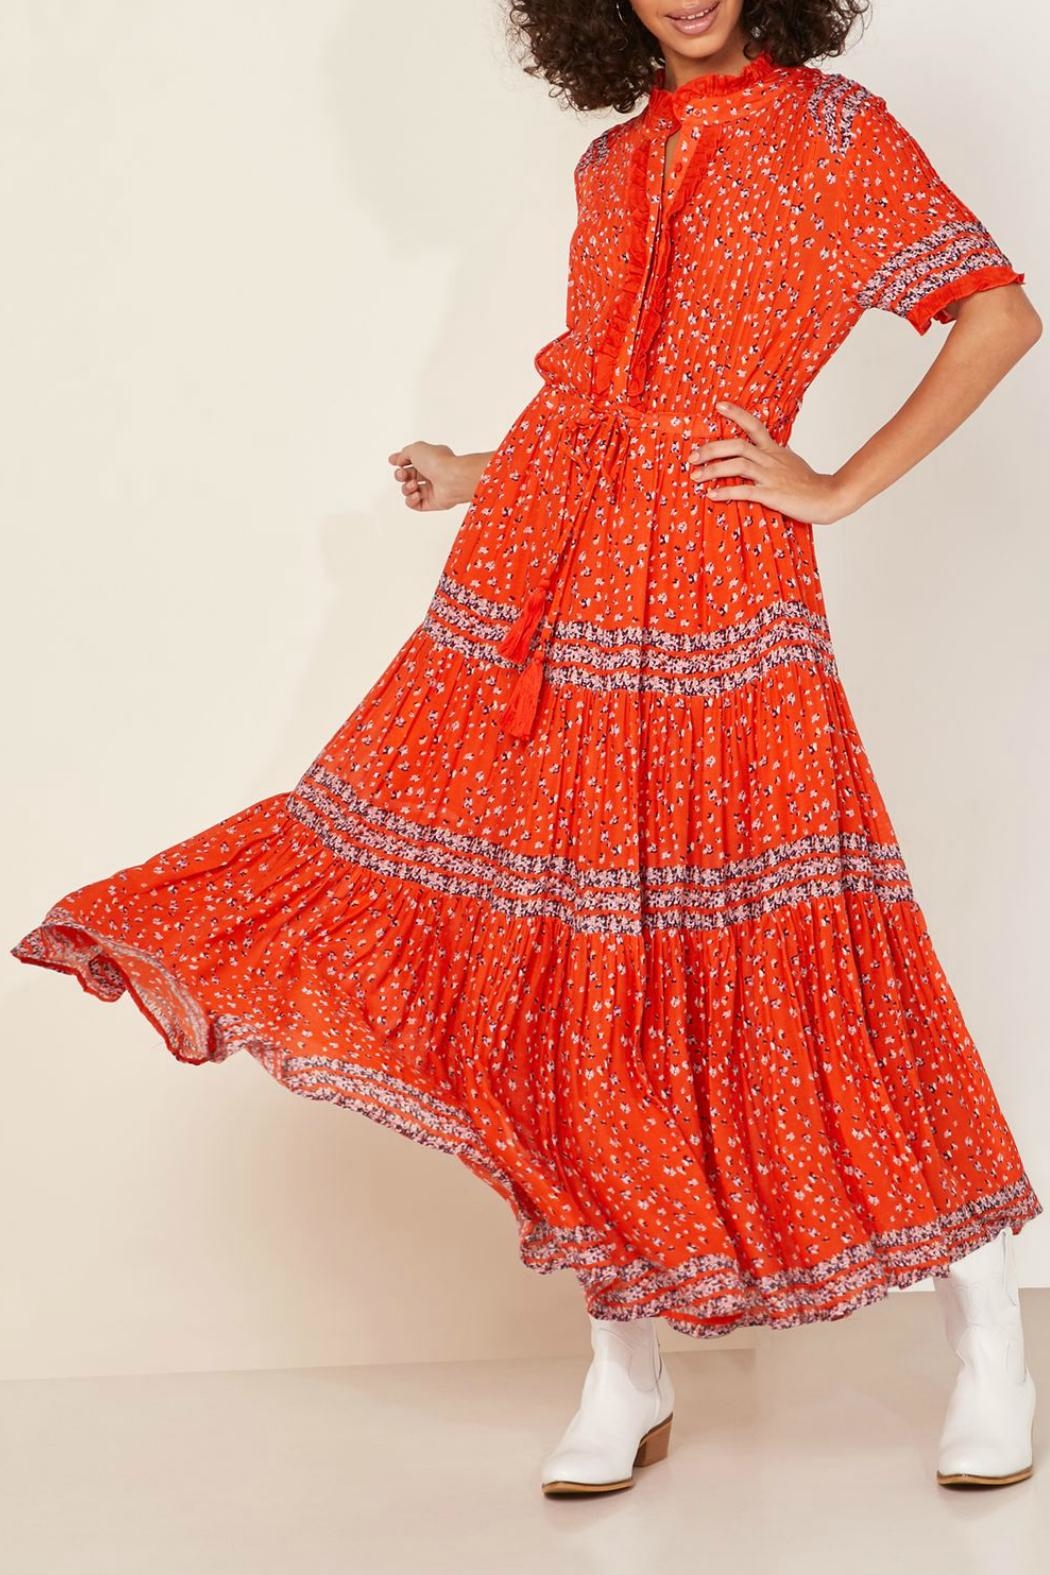 Free People Floral Tiered Maxi Dress - Main Image